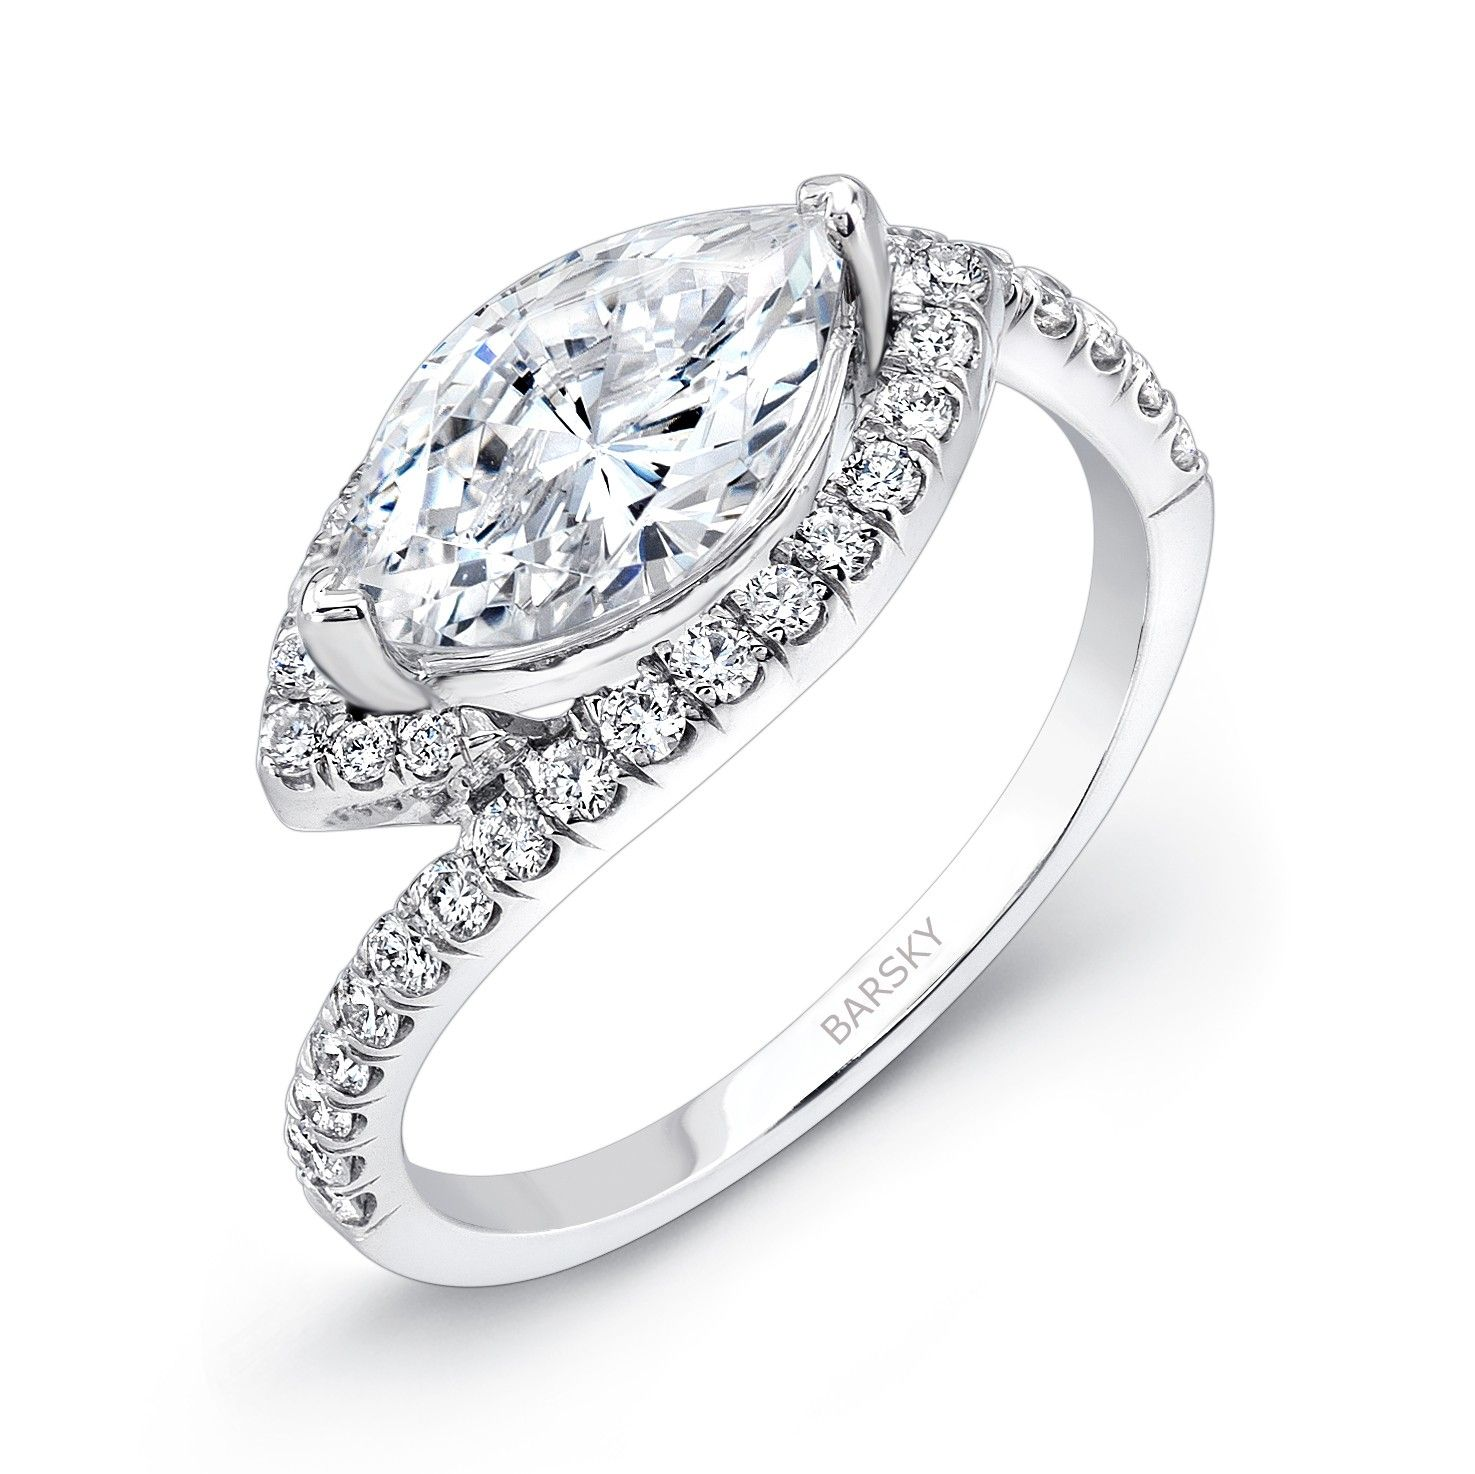 engagement of ring promise types ideas jewellery wedding diamond settings different tag images rings